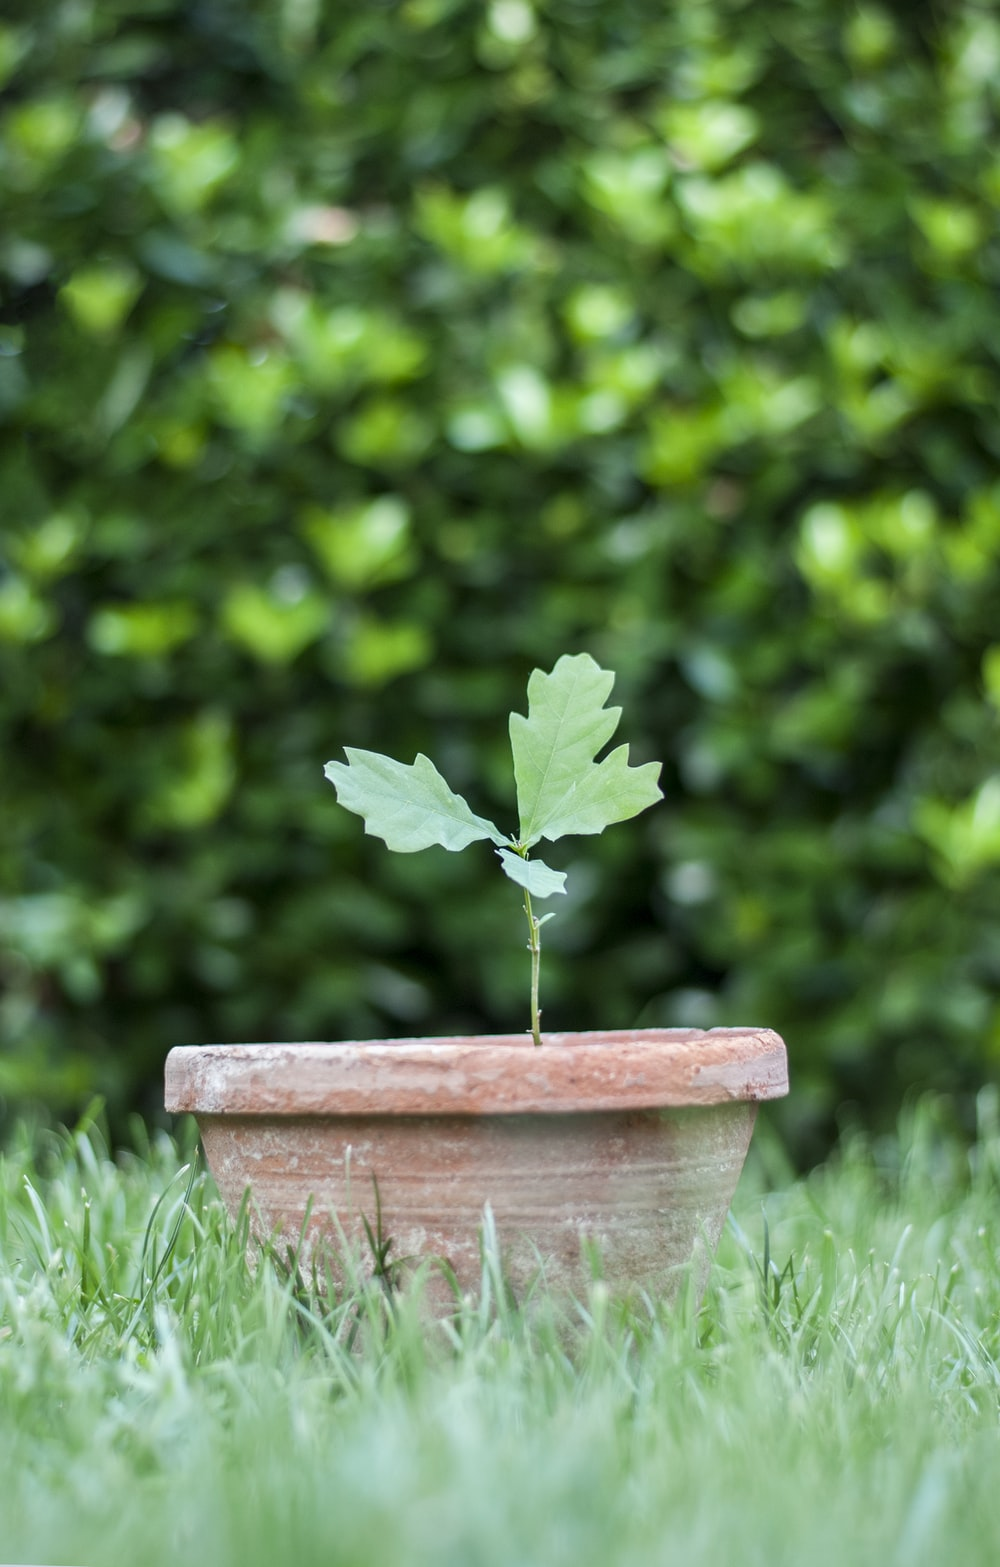 green leafed plant on pot